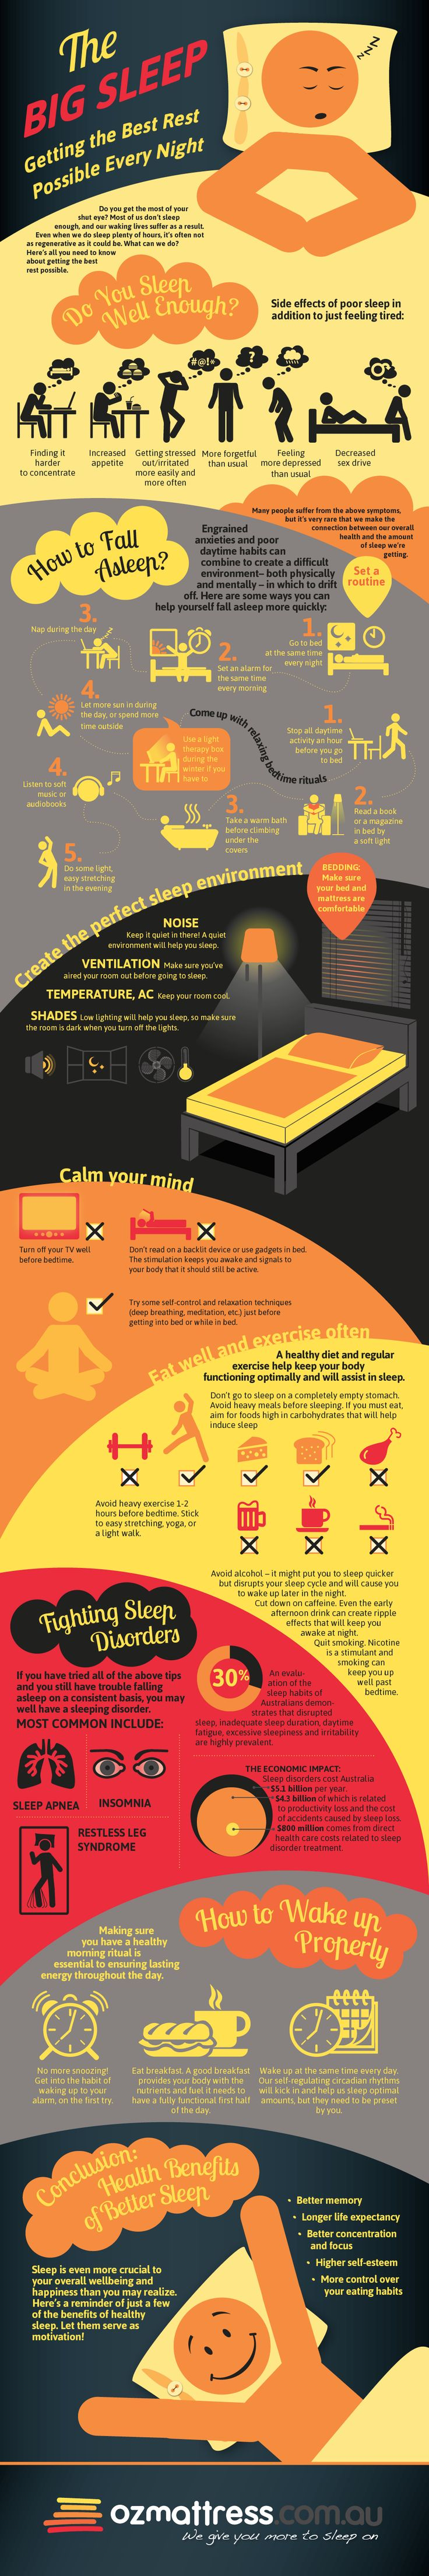 Sleep is crucial to your health, fitness, overall wellbeing and happiness. Check out this sleep infographic to learn more.